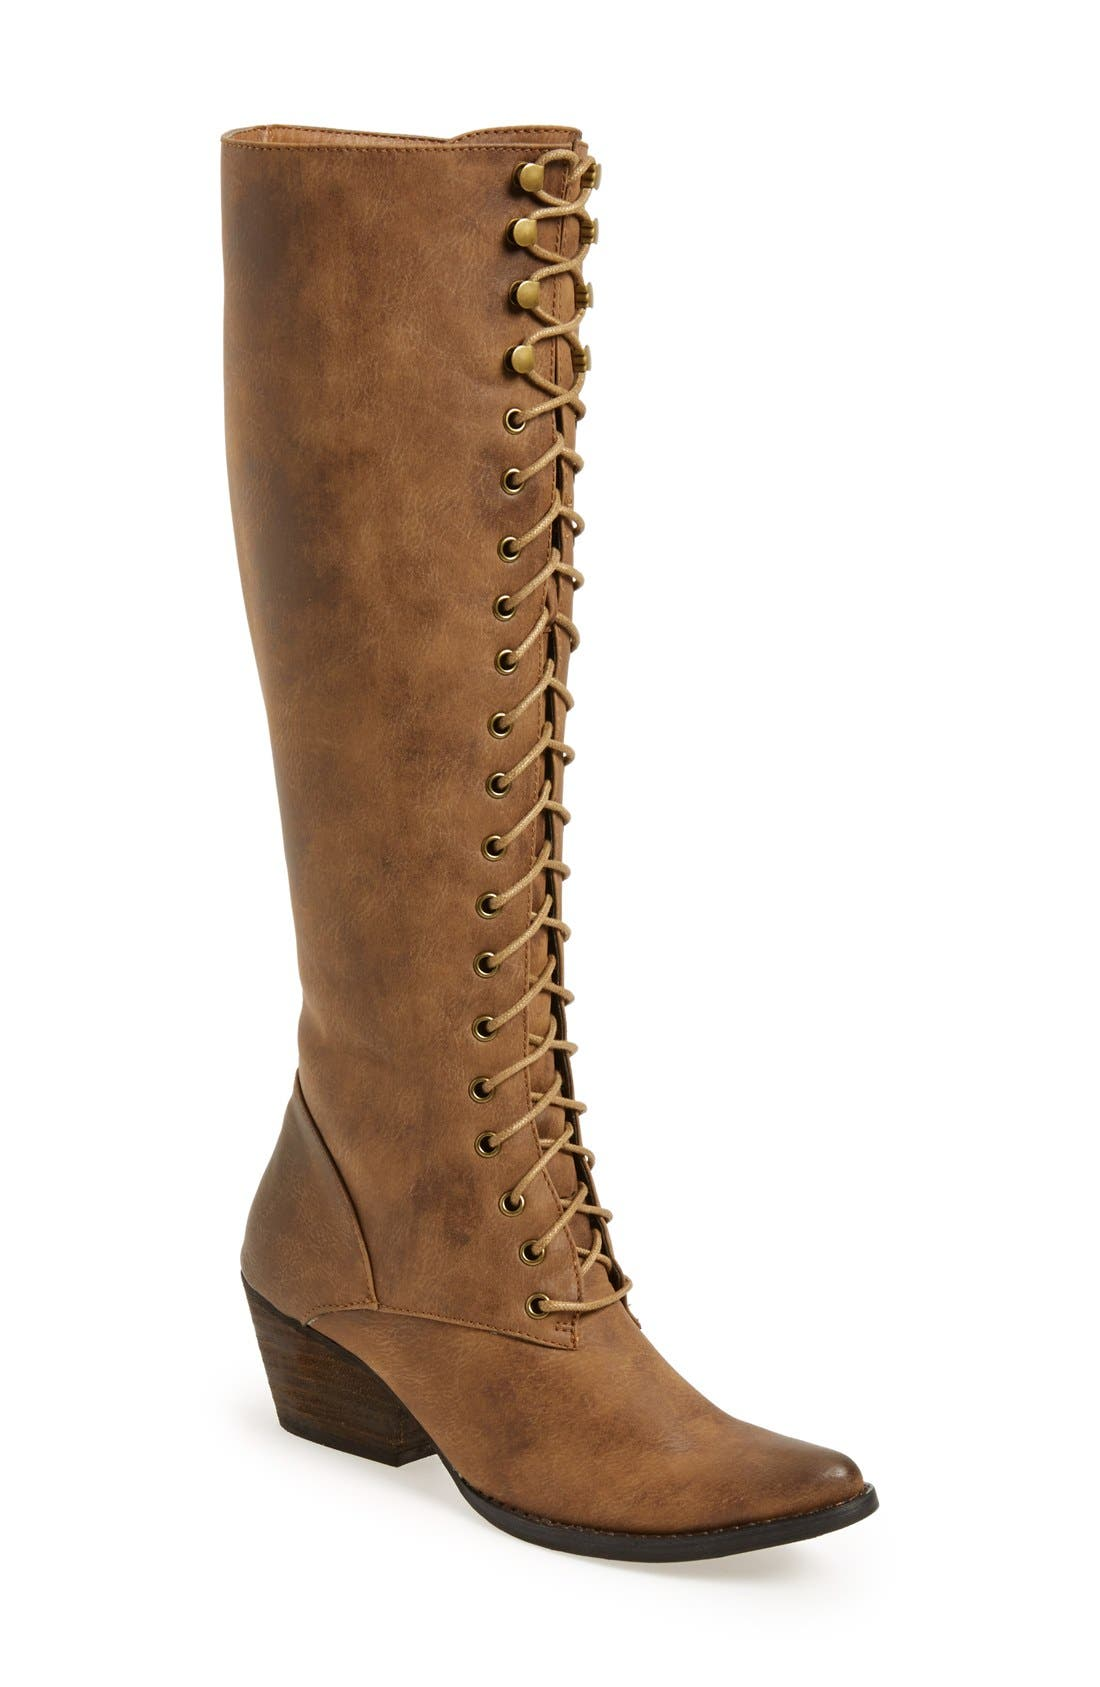 Alternate Image 1 Selected - Very Volatile 'Clementine' Lace-Up Boot (Women)